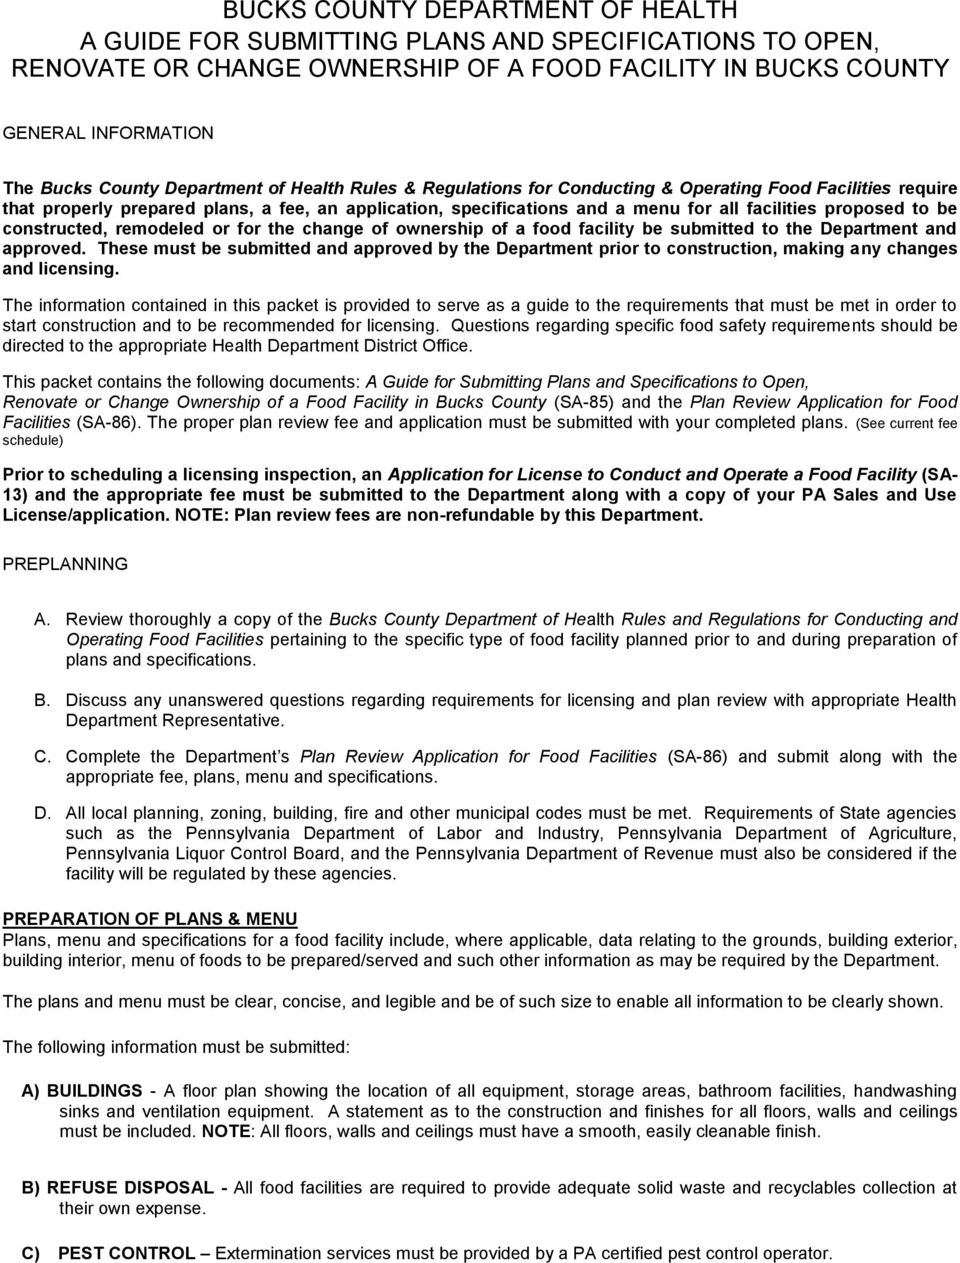 BUCKS COUNTY DEPARTMENT OF HEALTH PLAN REVIEW APPLICATION FOR FOOD